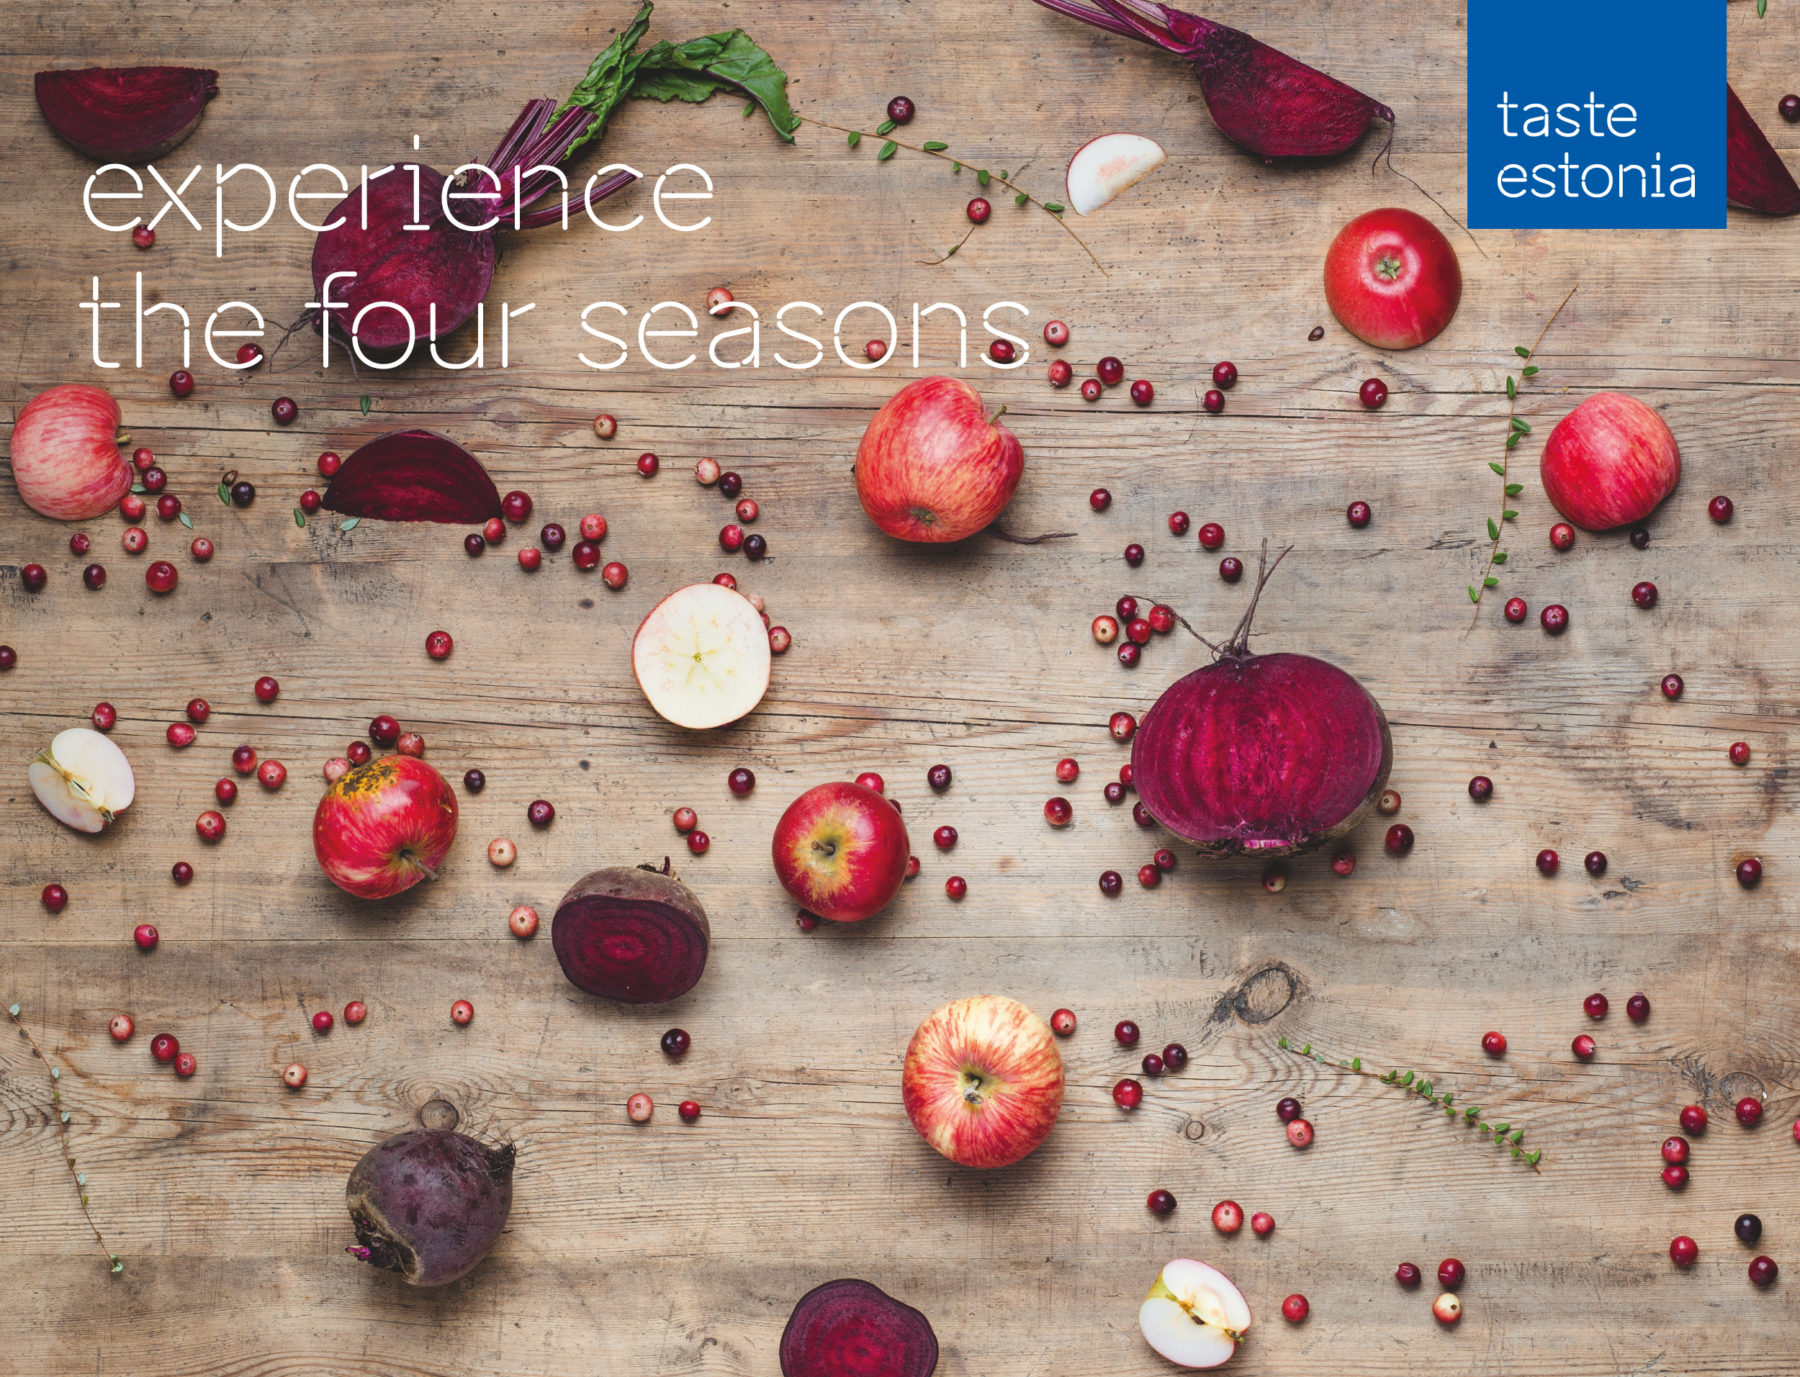 Taste Estonia photo wall with beets and apples